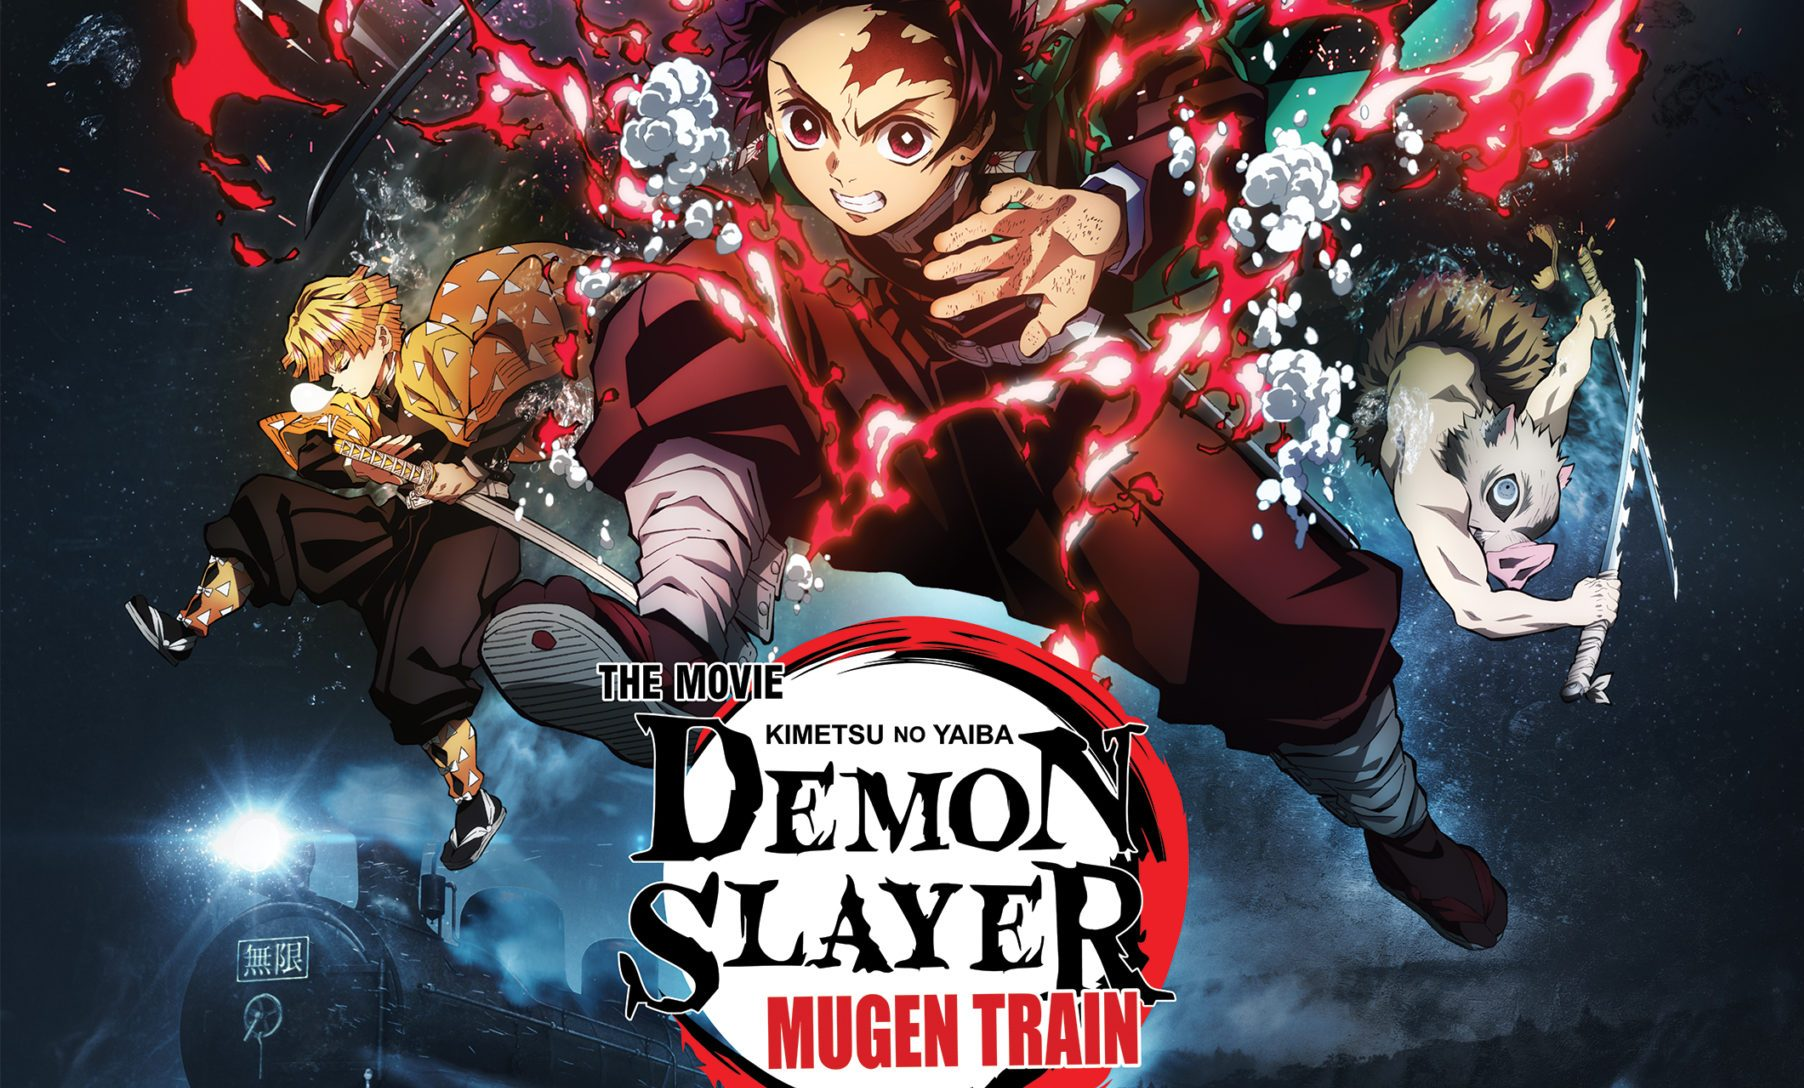 Demon Slayer Season 2 Spoilers and Story after The Mugen Train